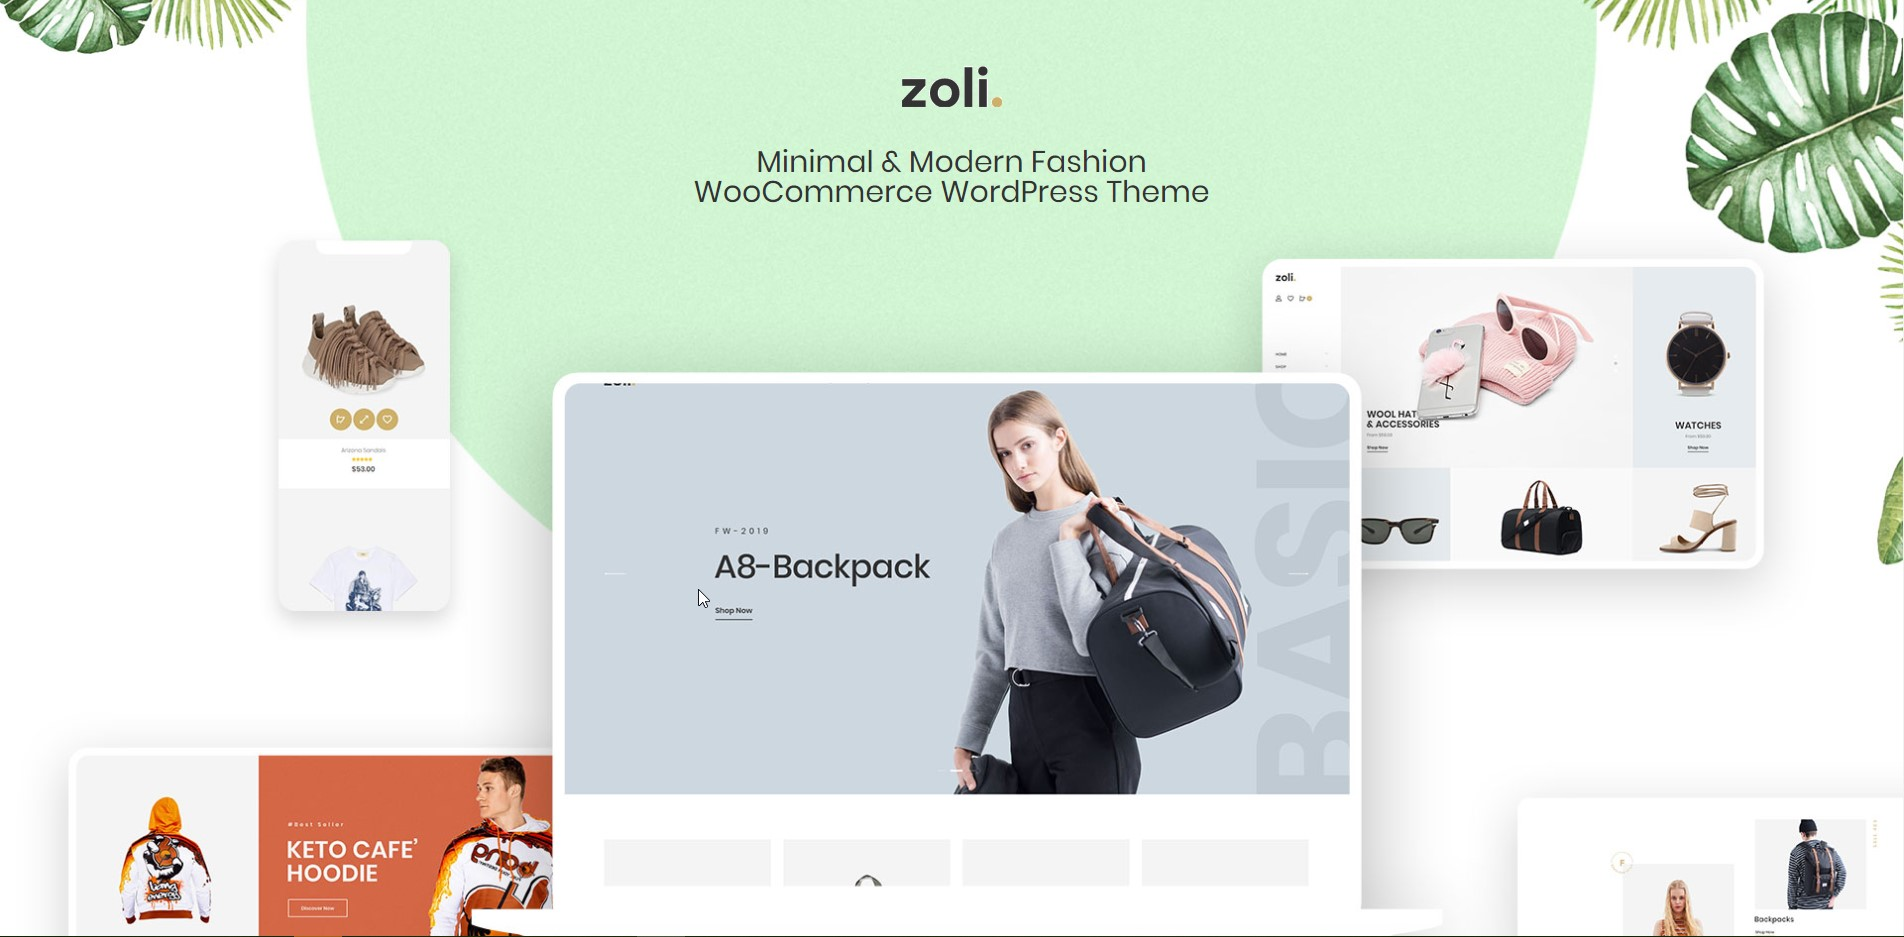 Zoli - Minimal & Modern Fashion WooCommerce WordPress Theme